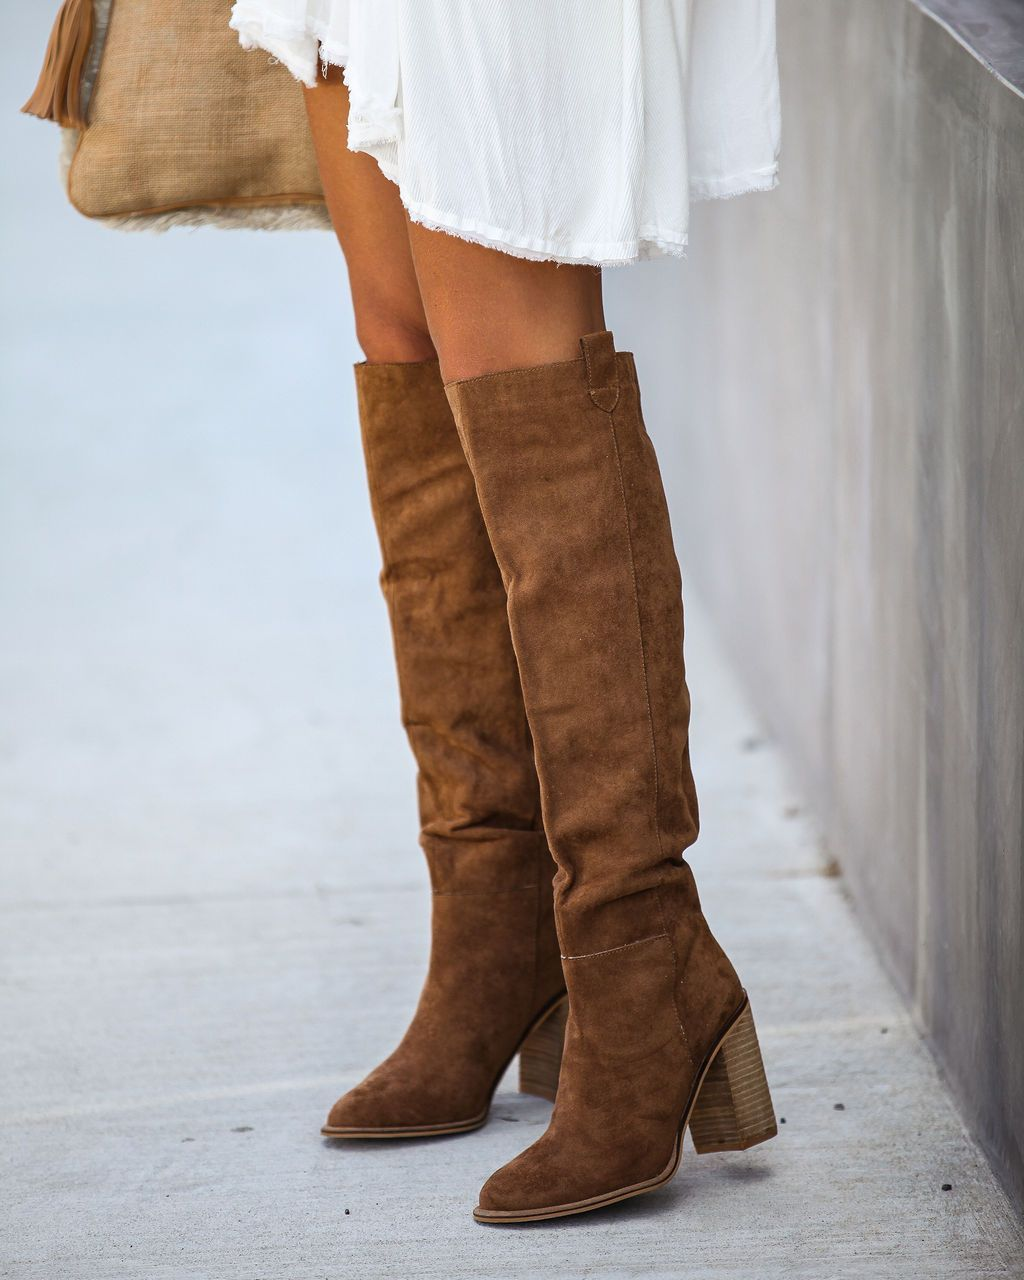 Leather Boots Eu 37 Camel brown genuine leather womens boots With Heels Knee hight leather boots Tall boots Chunky heel